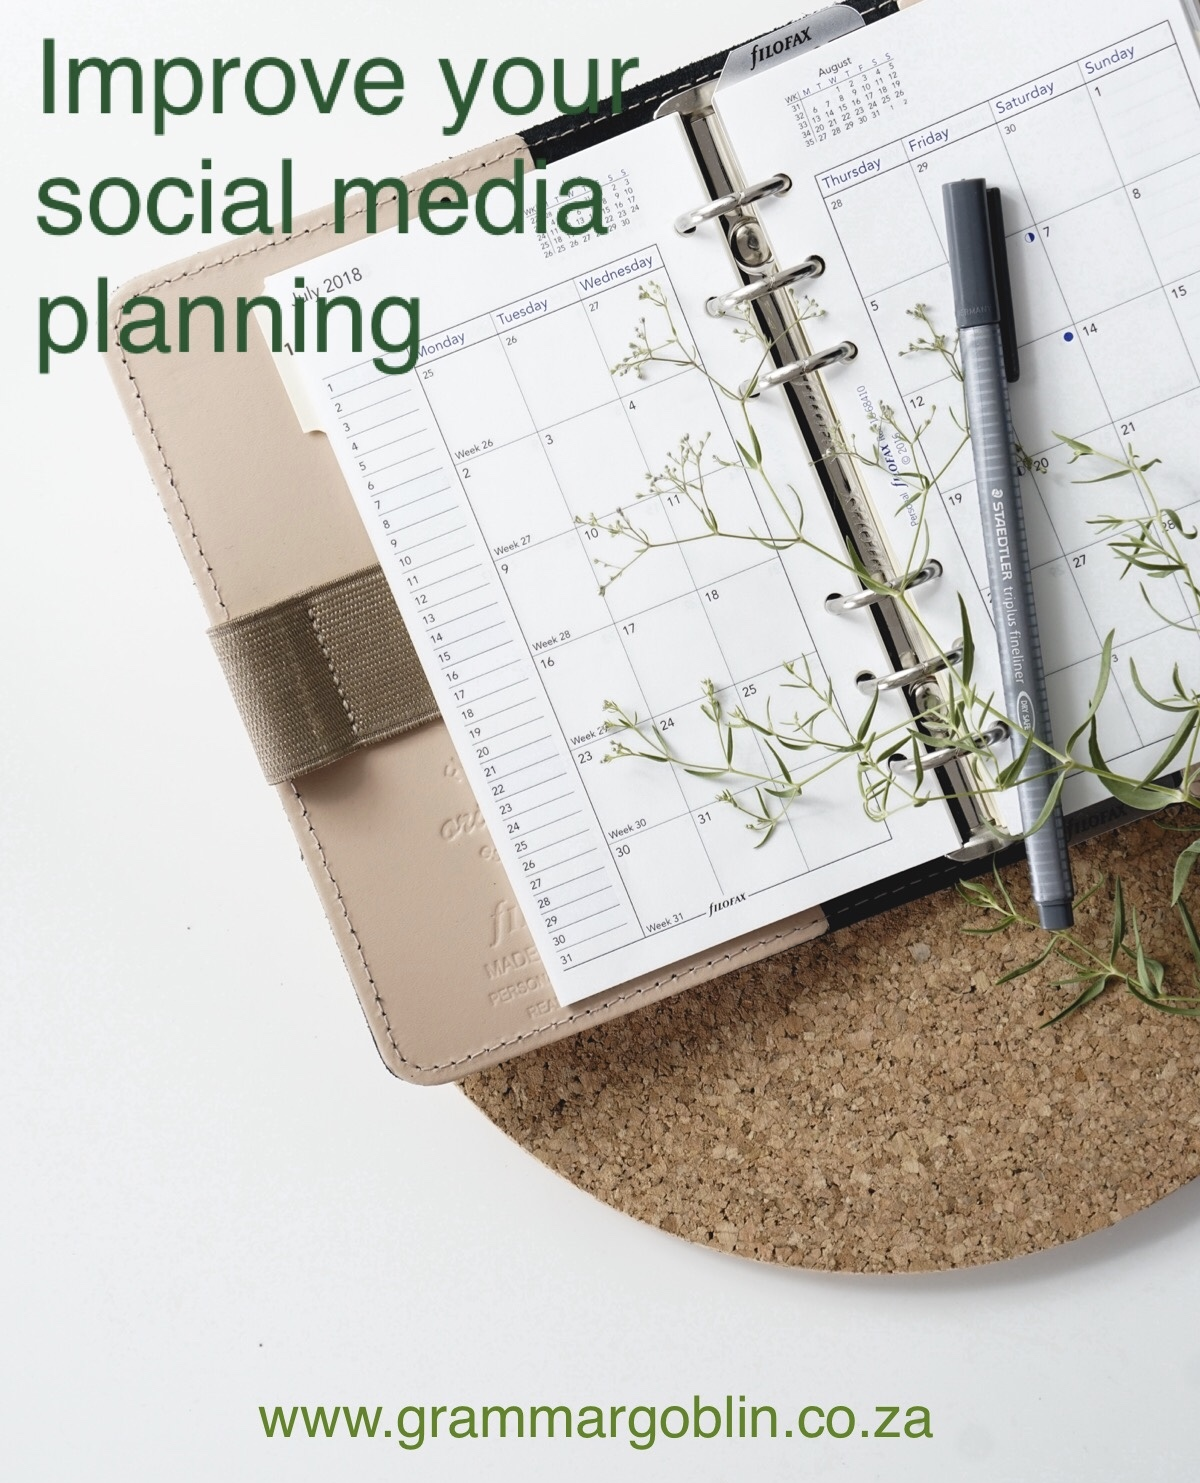 3 ways to improve your social media planning